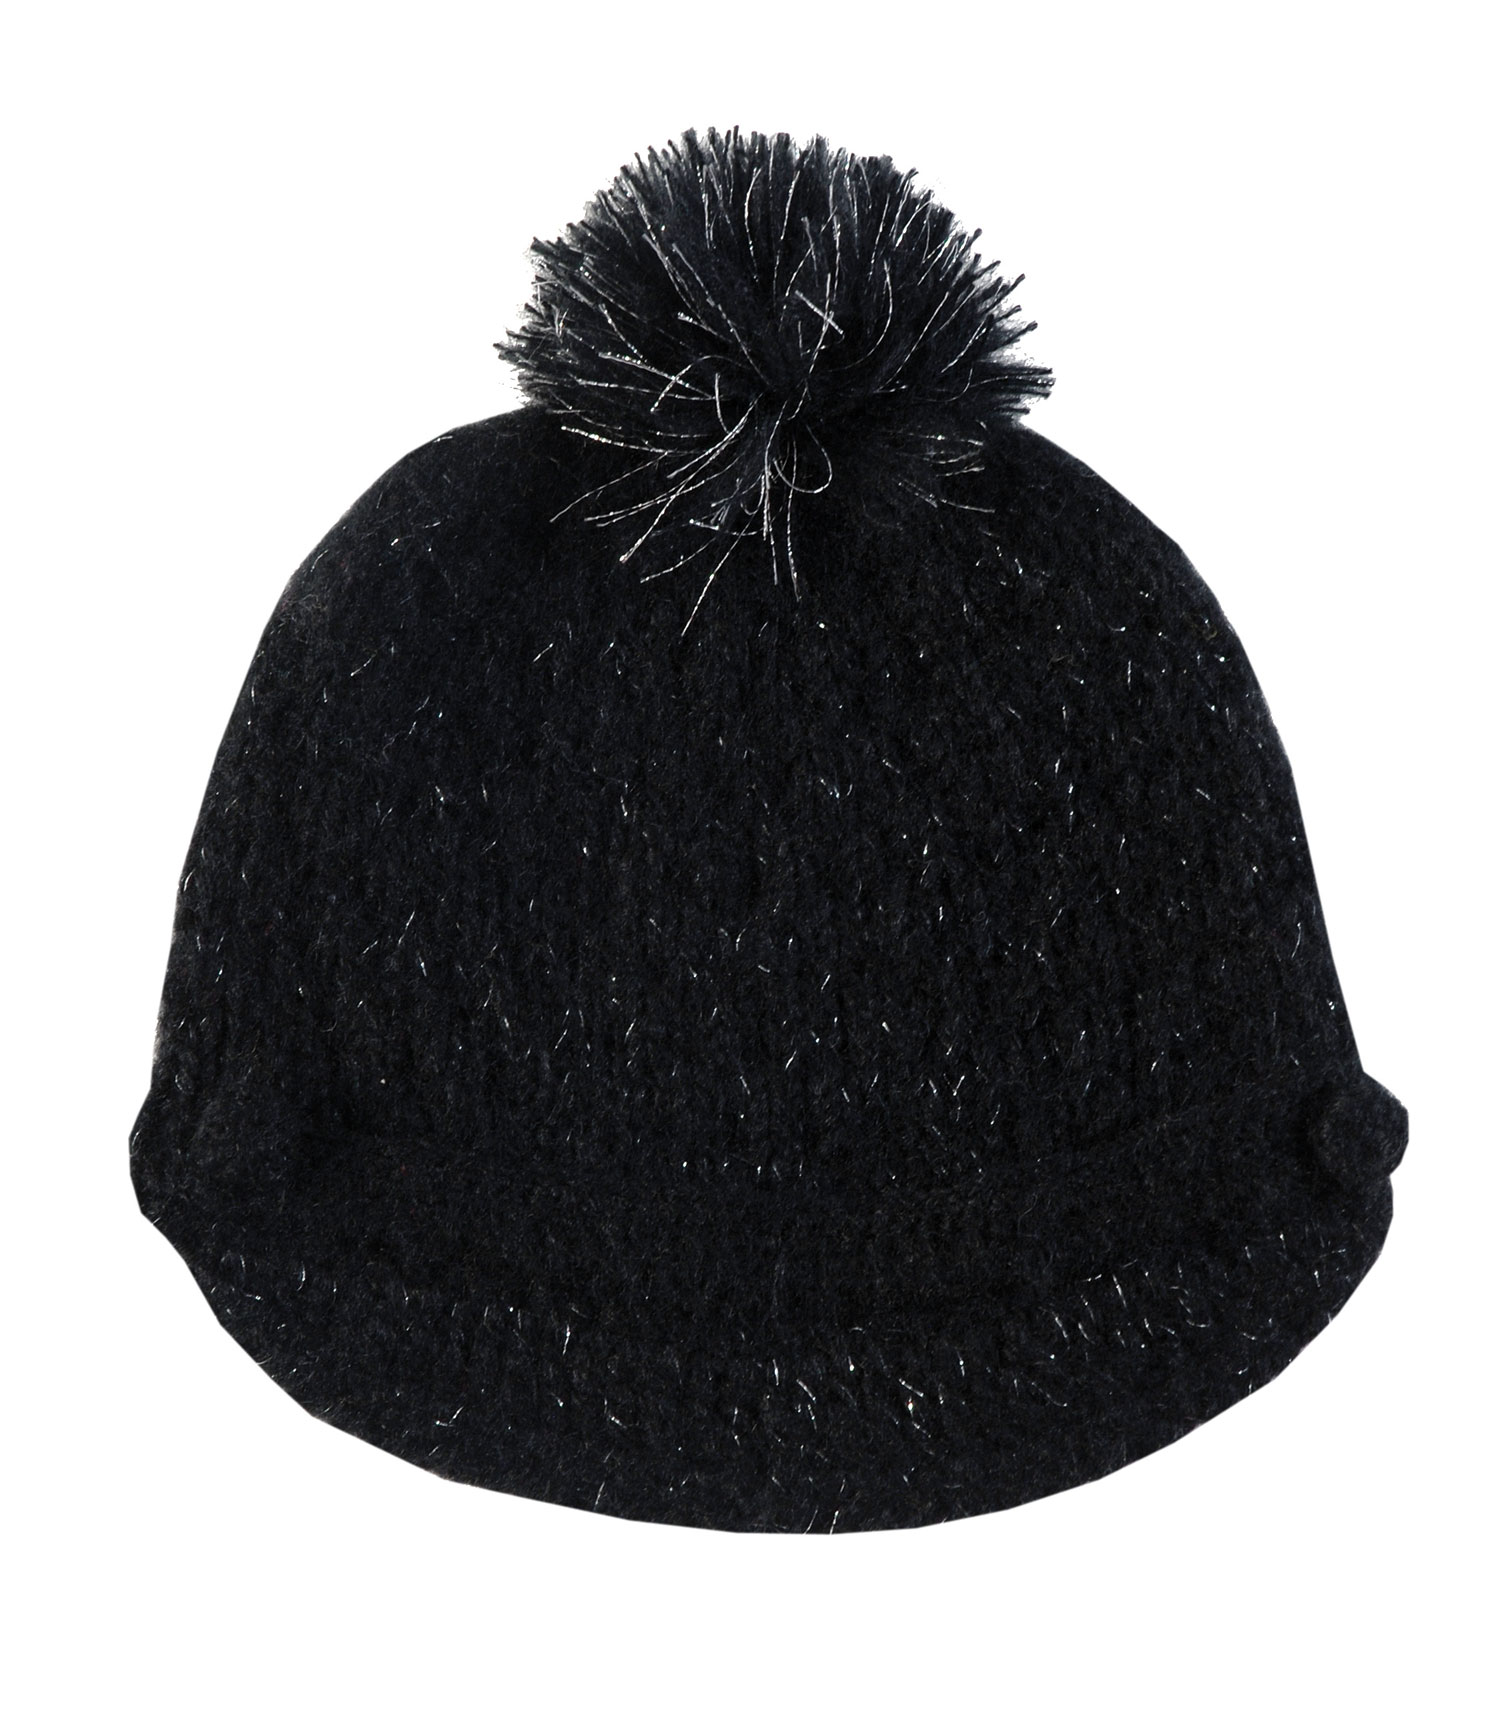 Snowboard 100% AcrylicKey Features of the Neff Muffin Beanie: 100% Acrylic - $12.95